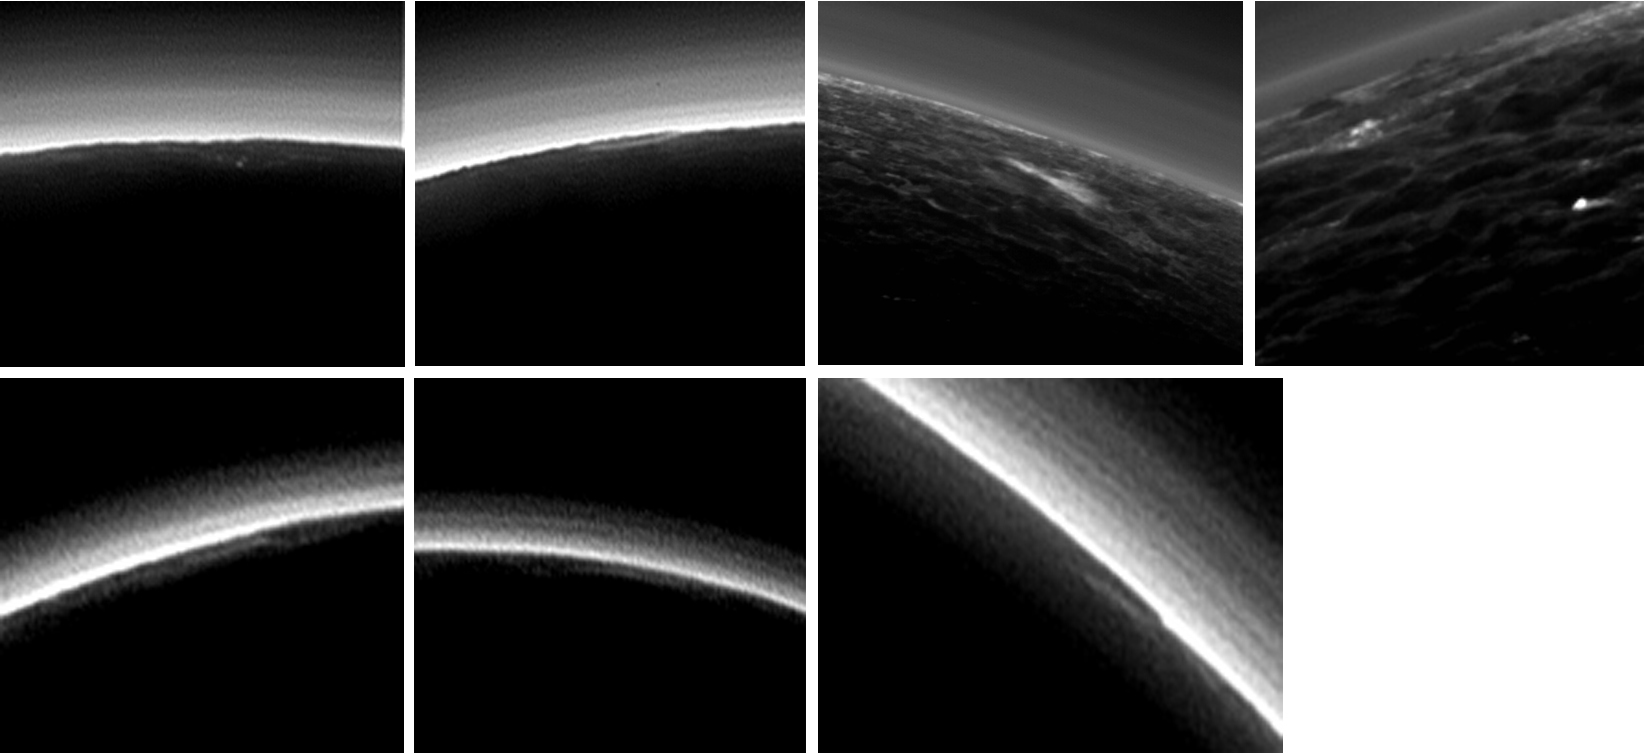 nh-possiblecloudsonpluto.jpg